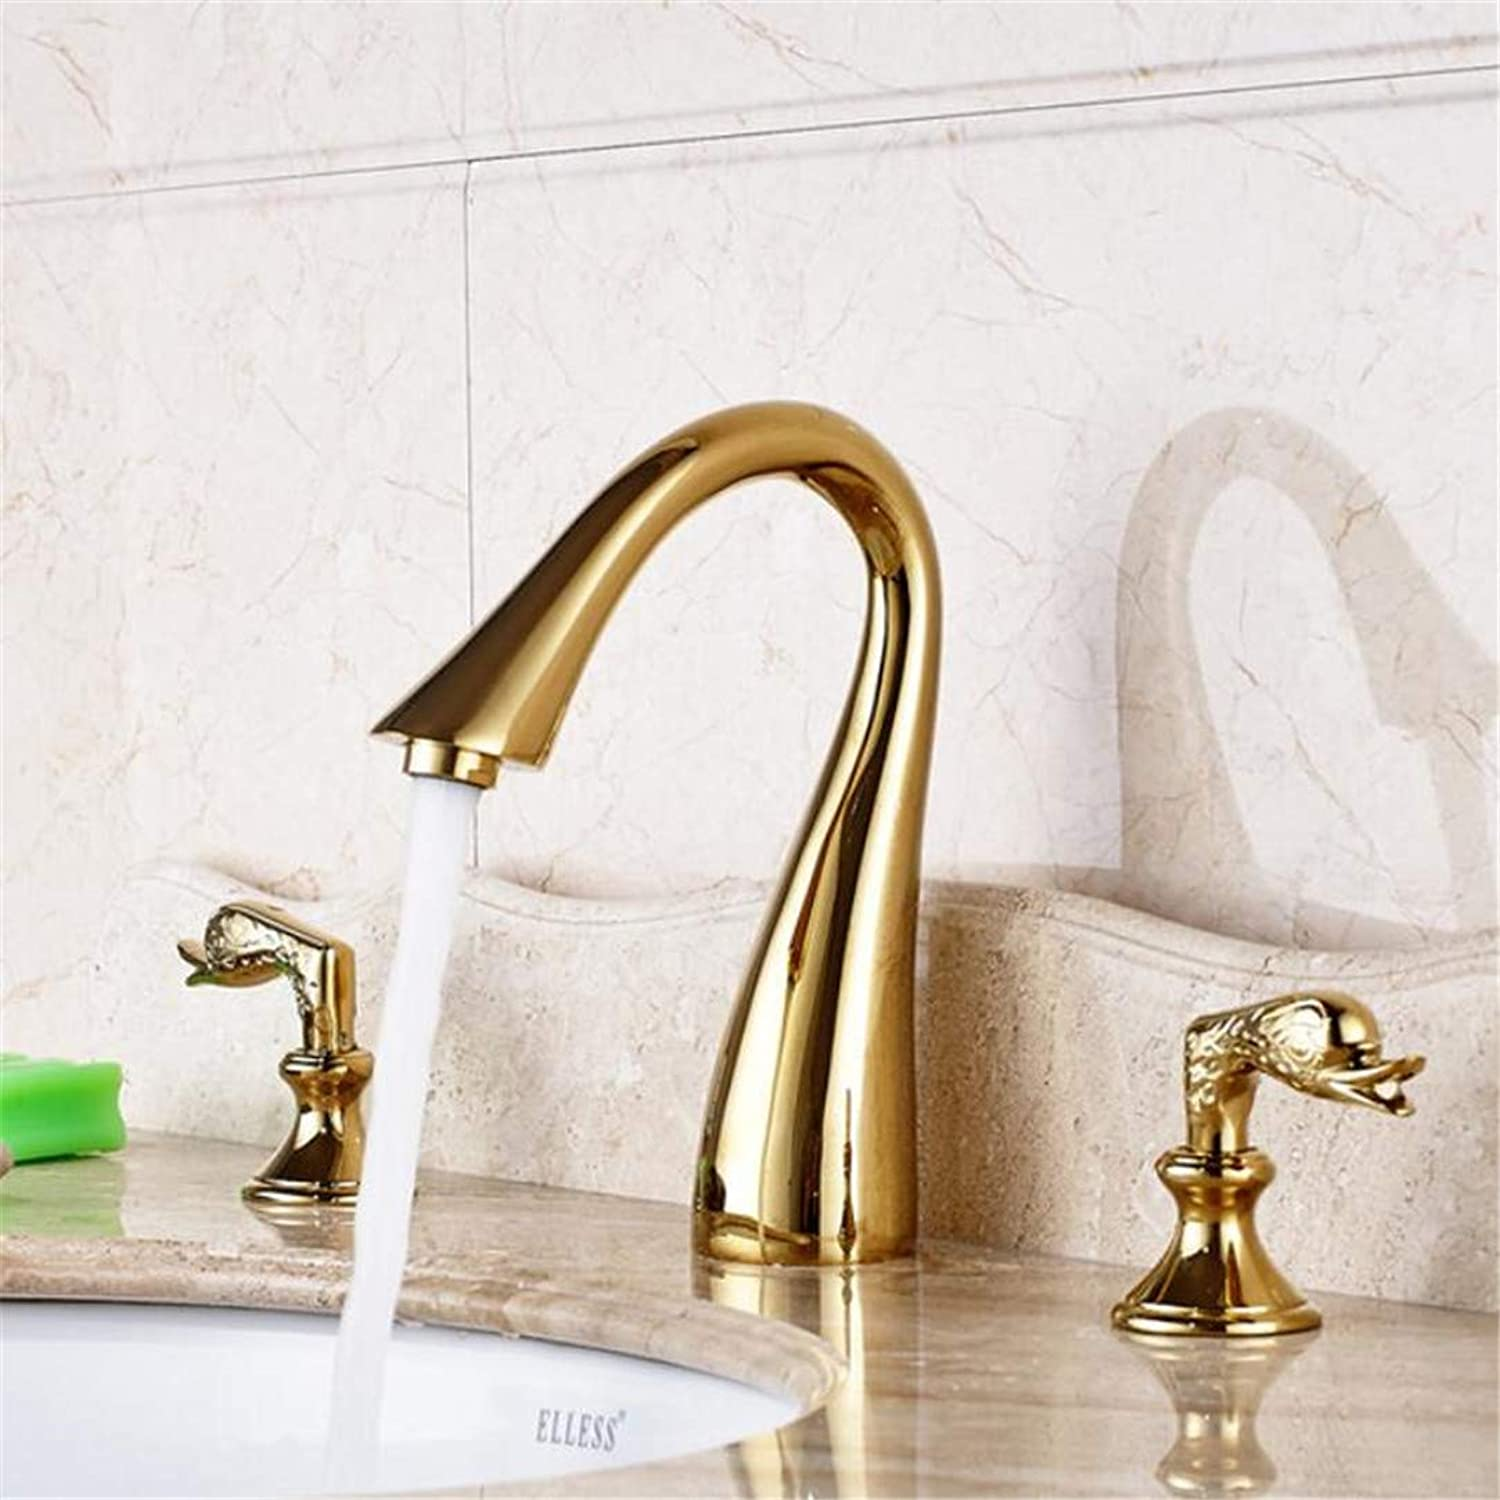 Faucet Washbasin Mixer gold Polished Deck Mounted 3Pcs Bathroom Sink Faucet Double Handles Mixer Tap